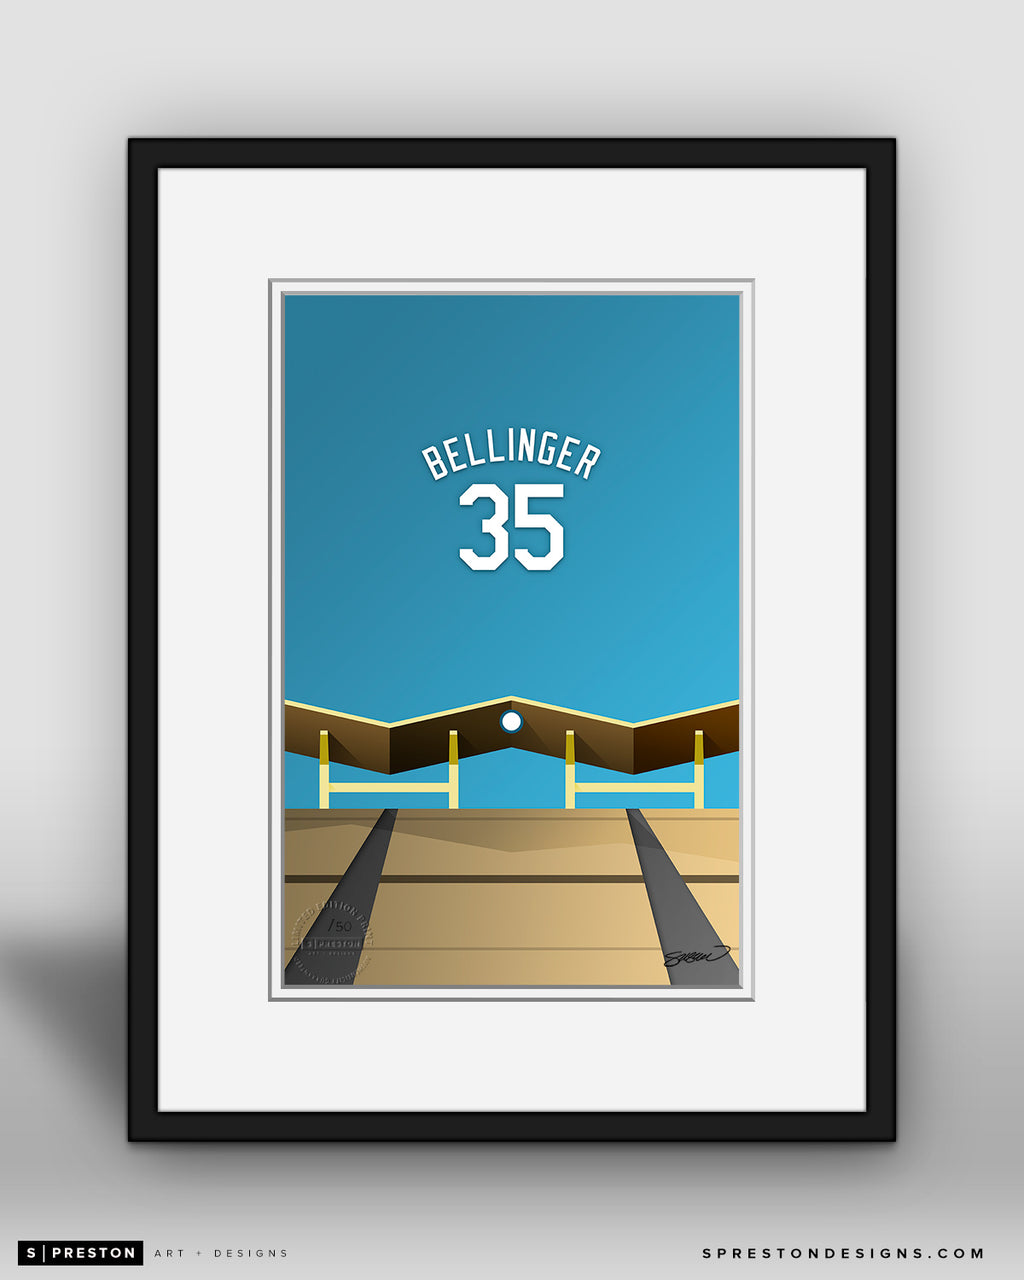 Minimalist Dodger Stadium - Player Series - Cody Bellinger